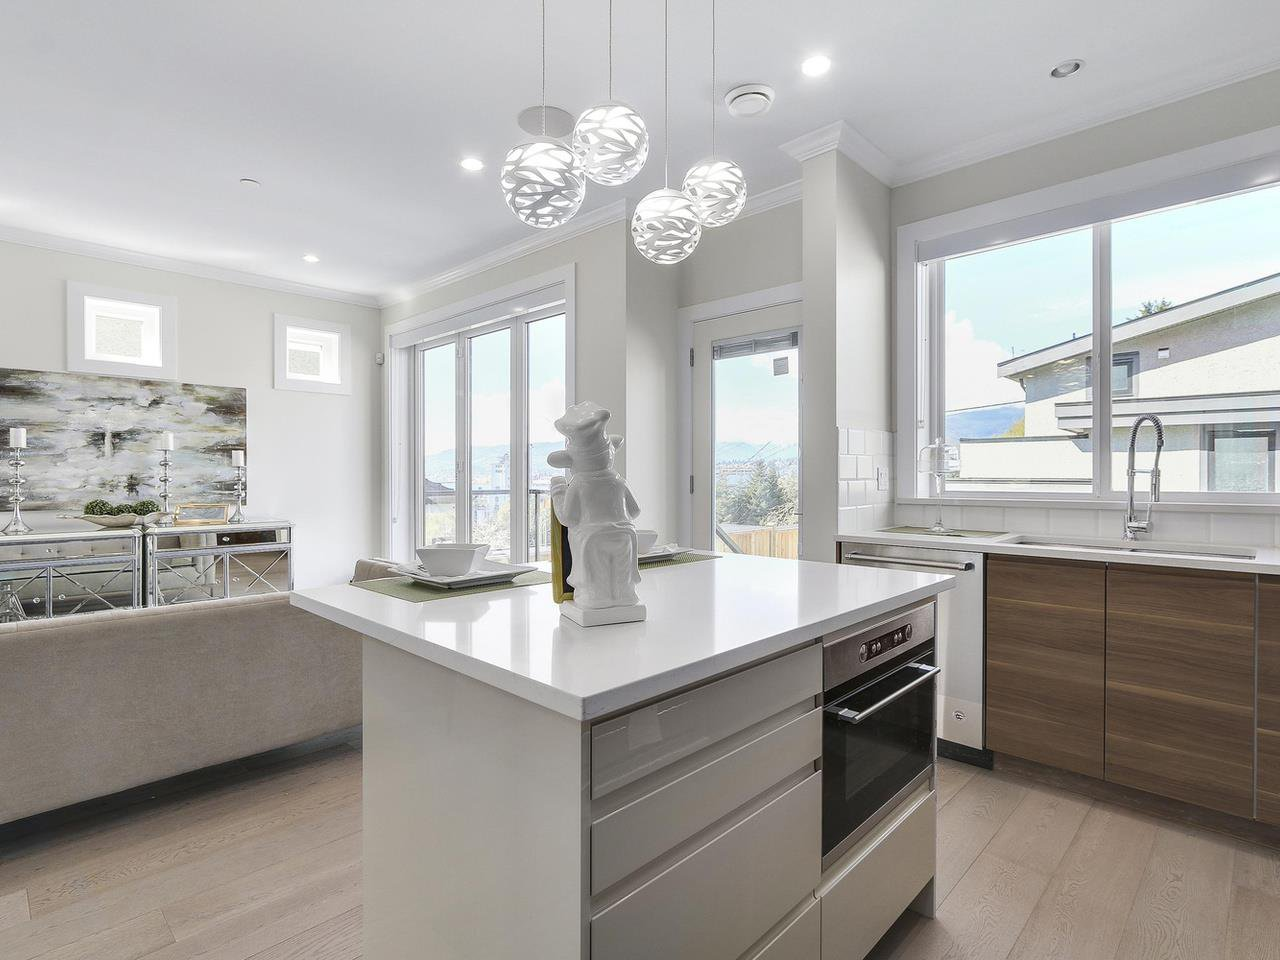 Photo 9: Photos: 3539 ETON STREET in Vancouver: Hastings East House for sale (Vancouver East)  : MLS®# R2159493